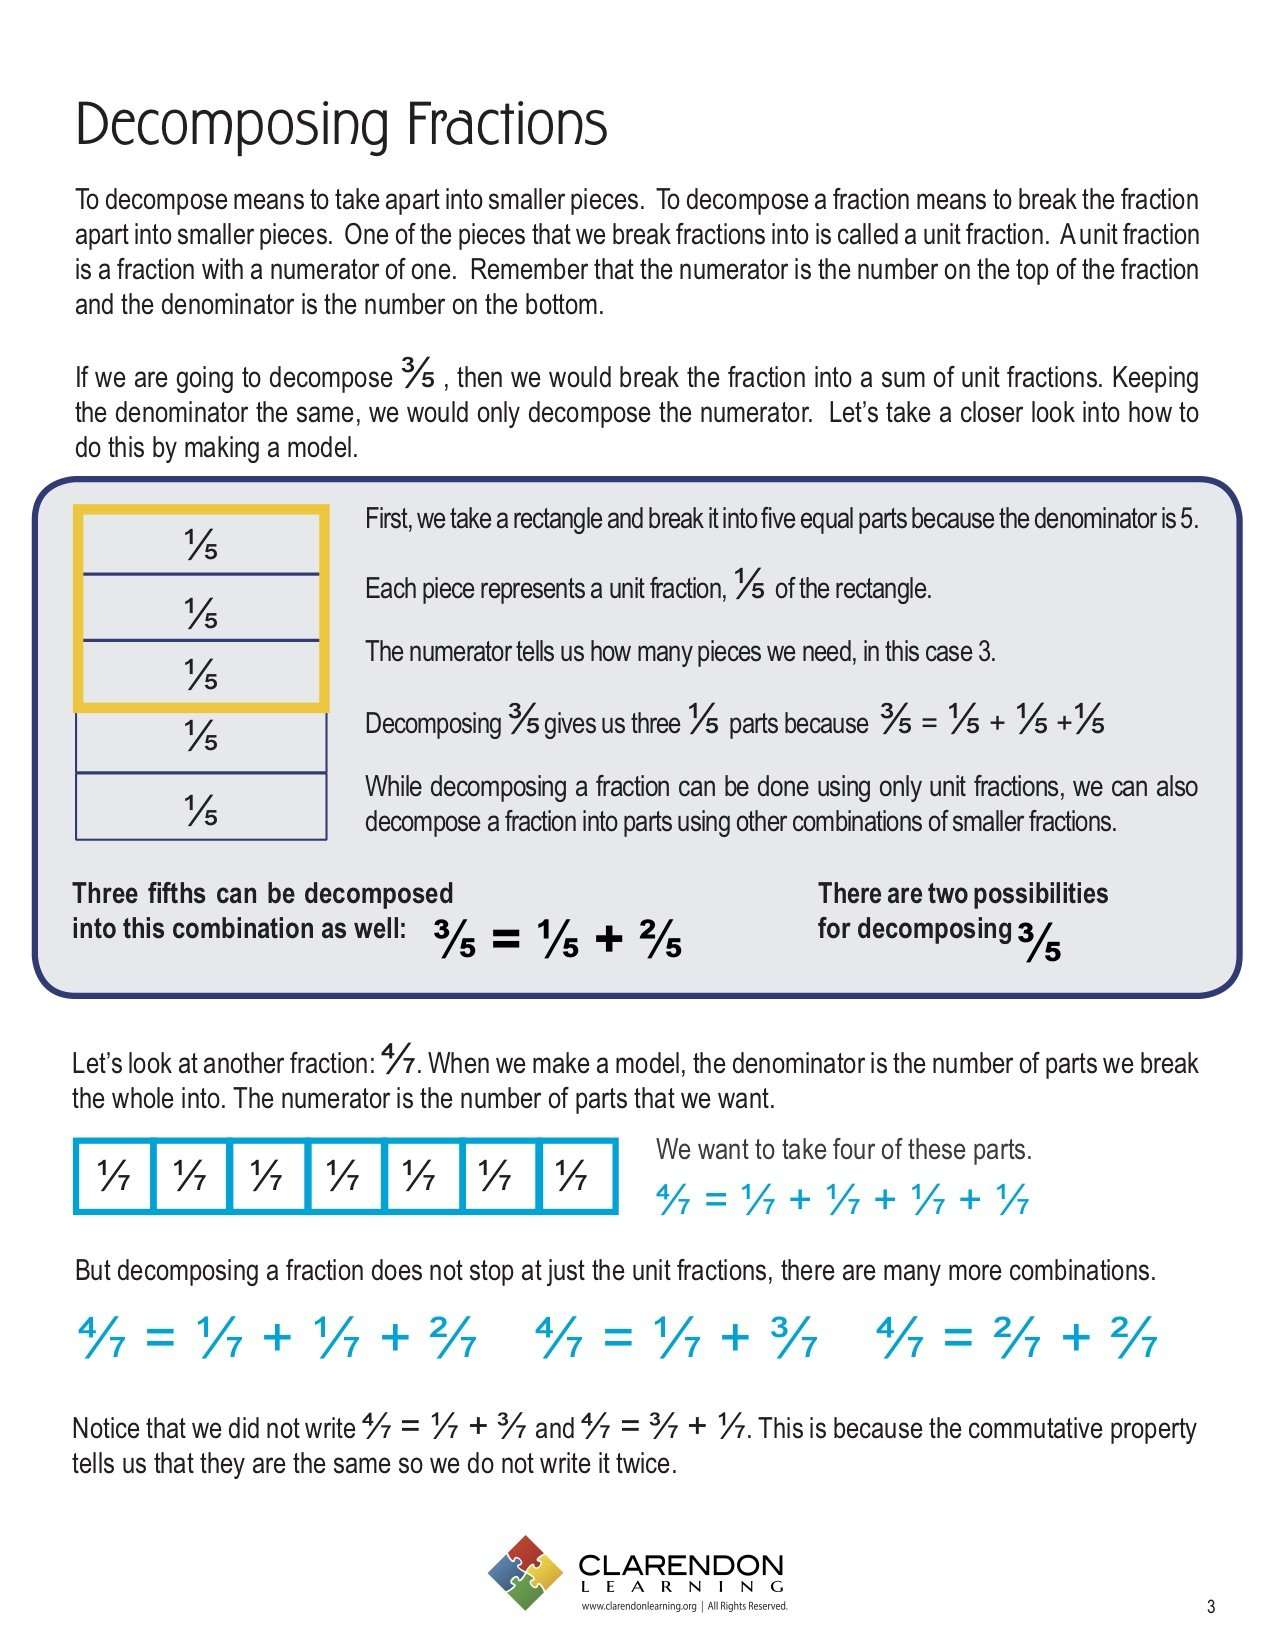 Decomposing Fractions Lesson Plan | Clarendon Learning